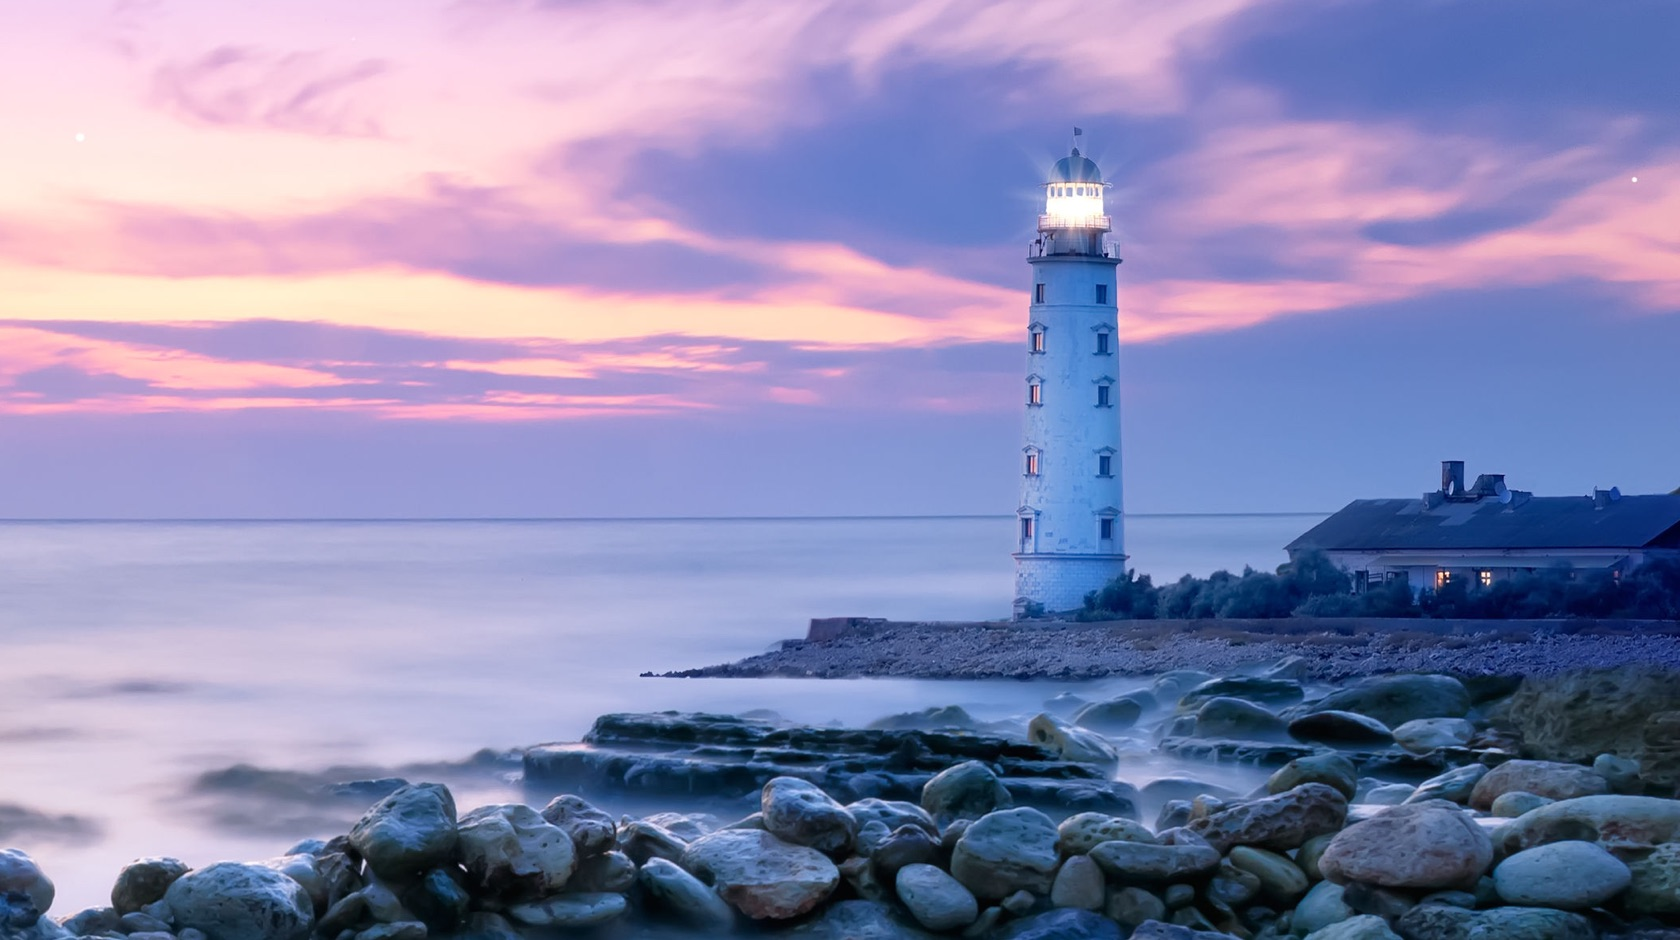 Is your business vision powered by modern IT? Look to Lighthouse